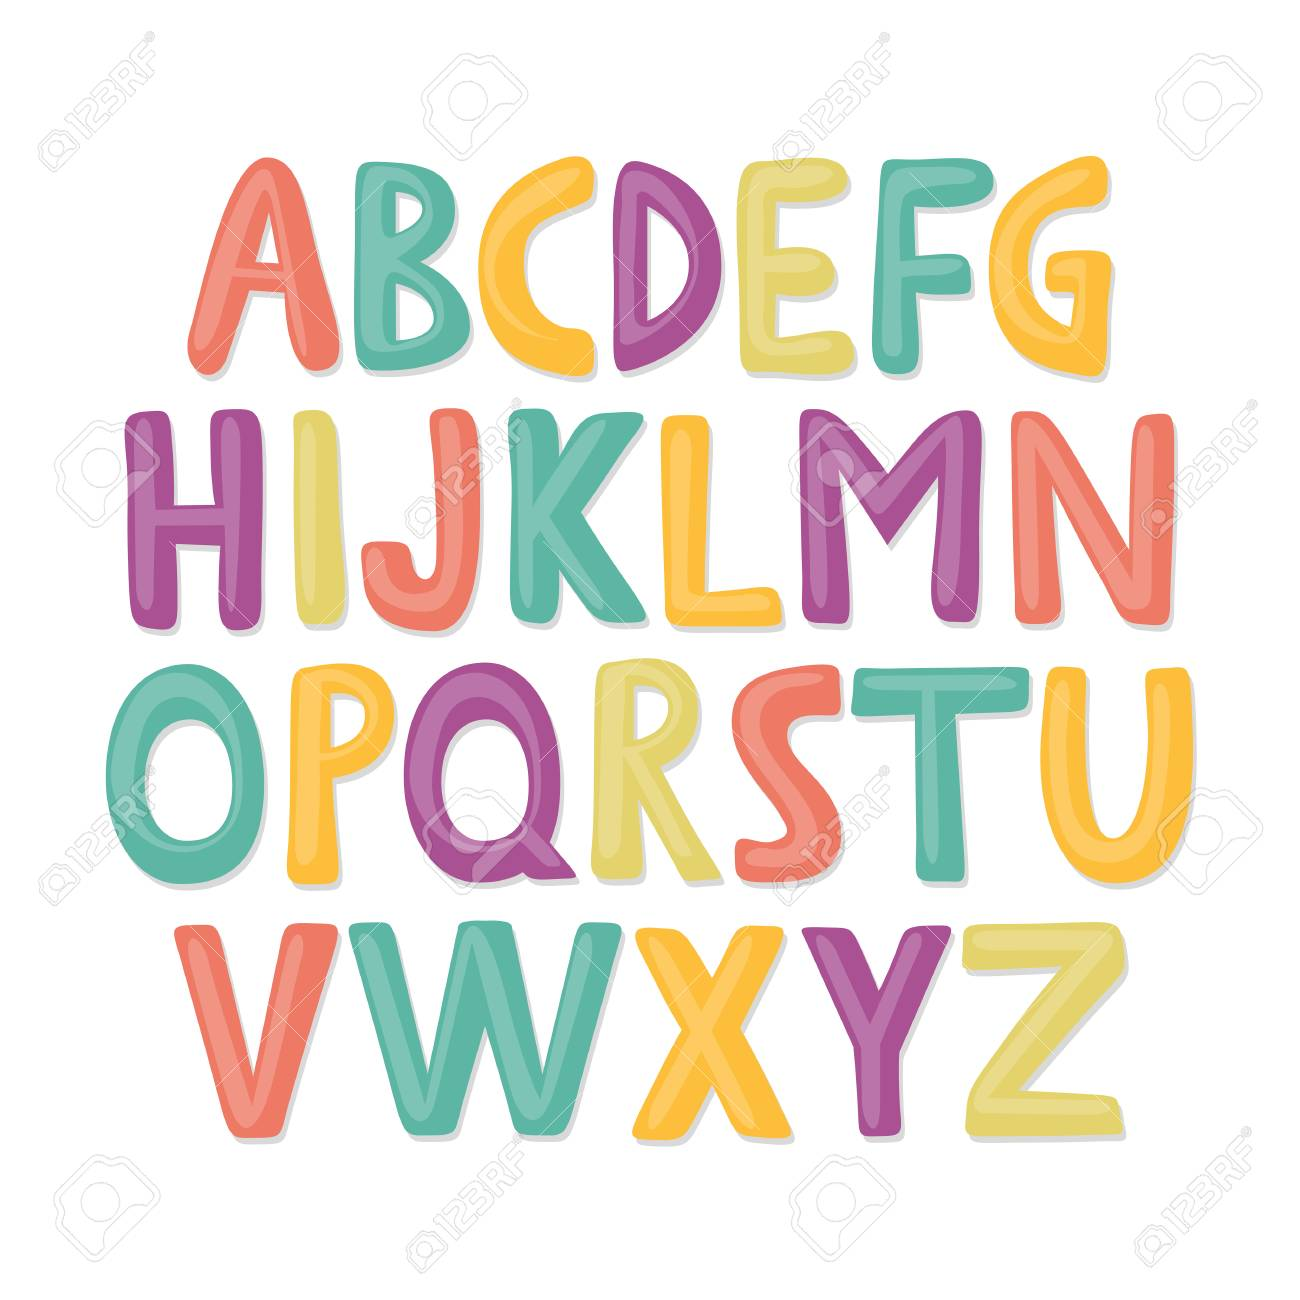 cute and colorful childish hand drawn english alphabet suited